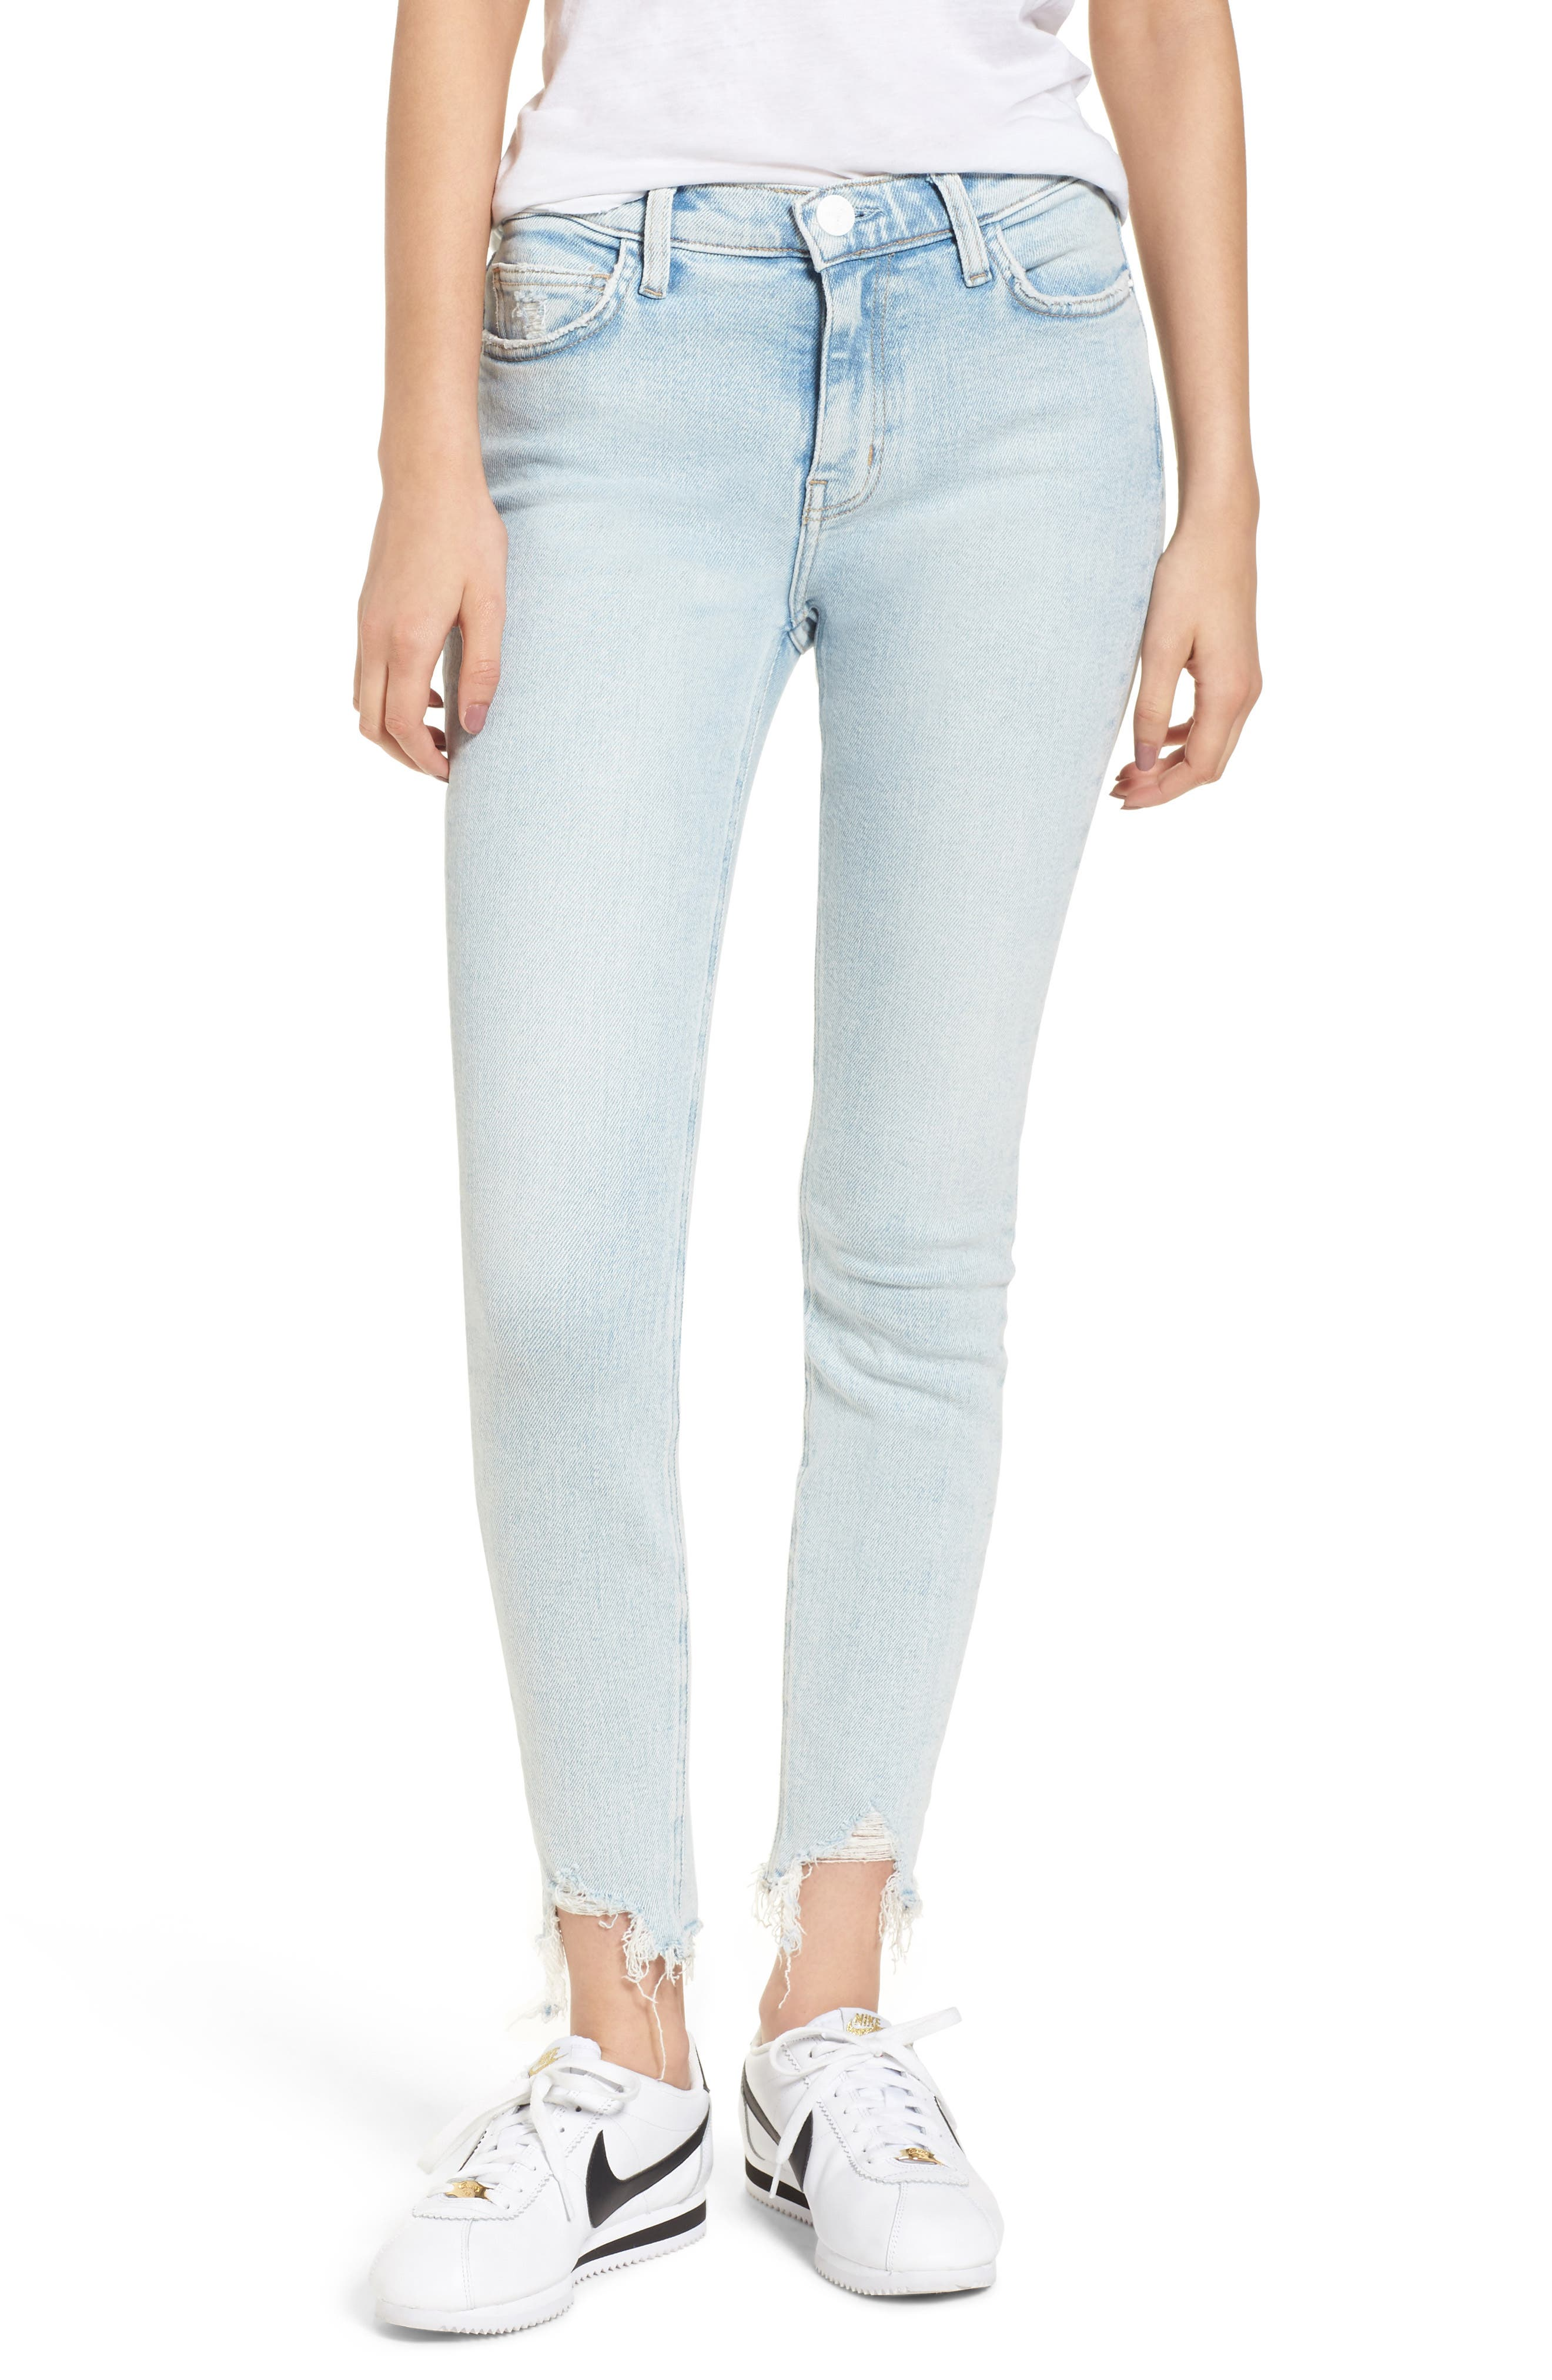 Current/elliott Woman The Ankle Mid-rise Skinny Jeans Mid Denim Size 32 Current Elliott Buy Cheap Outlet Store BEZnBt3